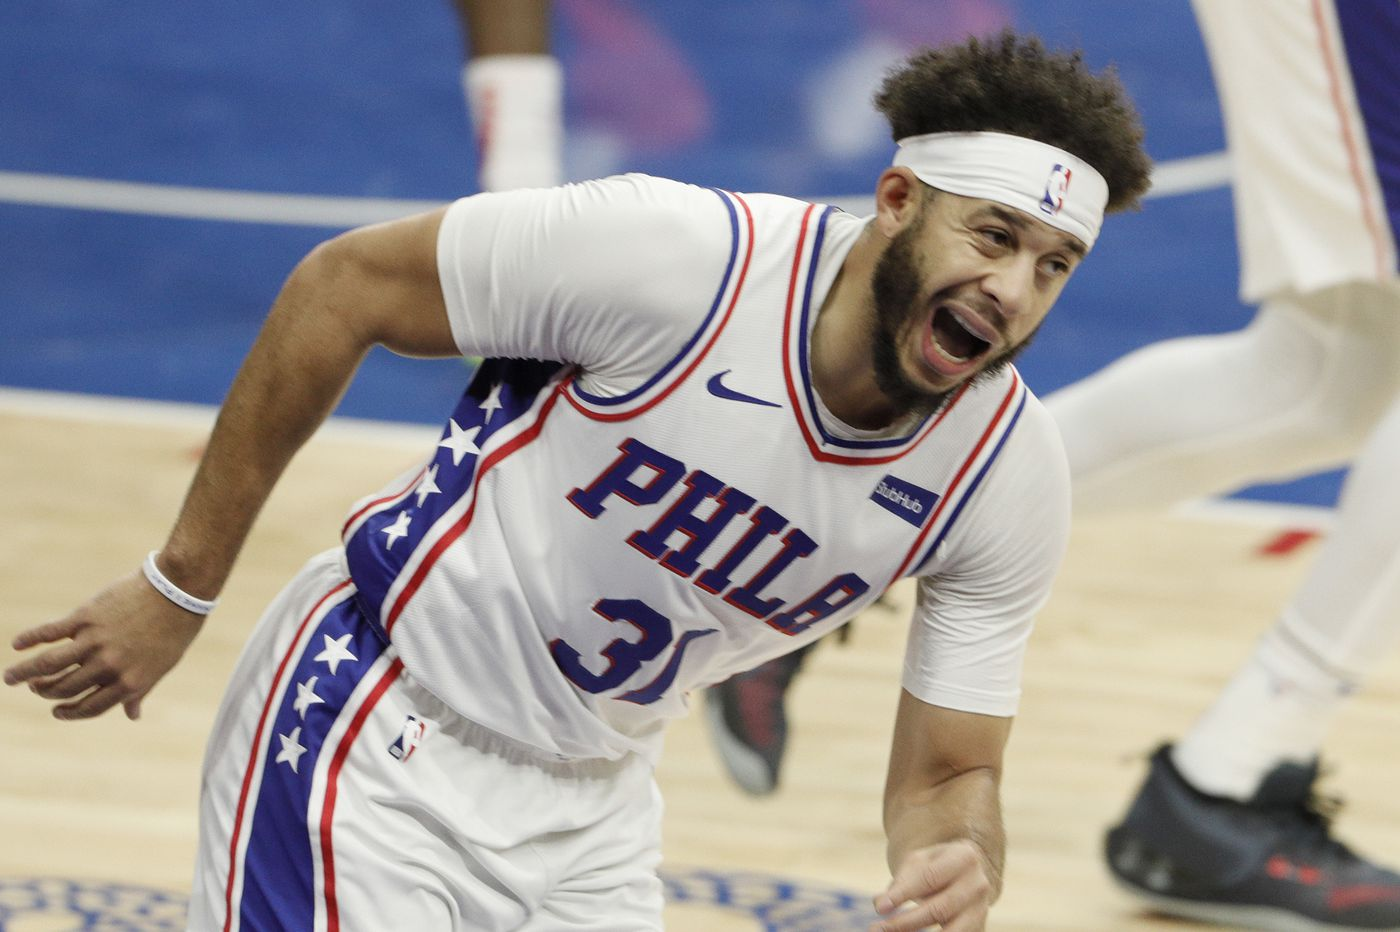 Quick takes from the Sixers' 141-136 victory over the Wizards